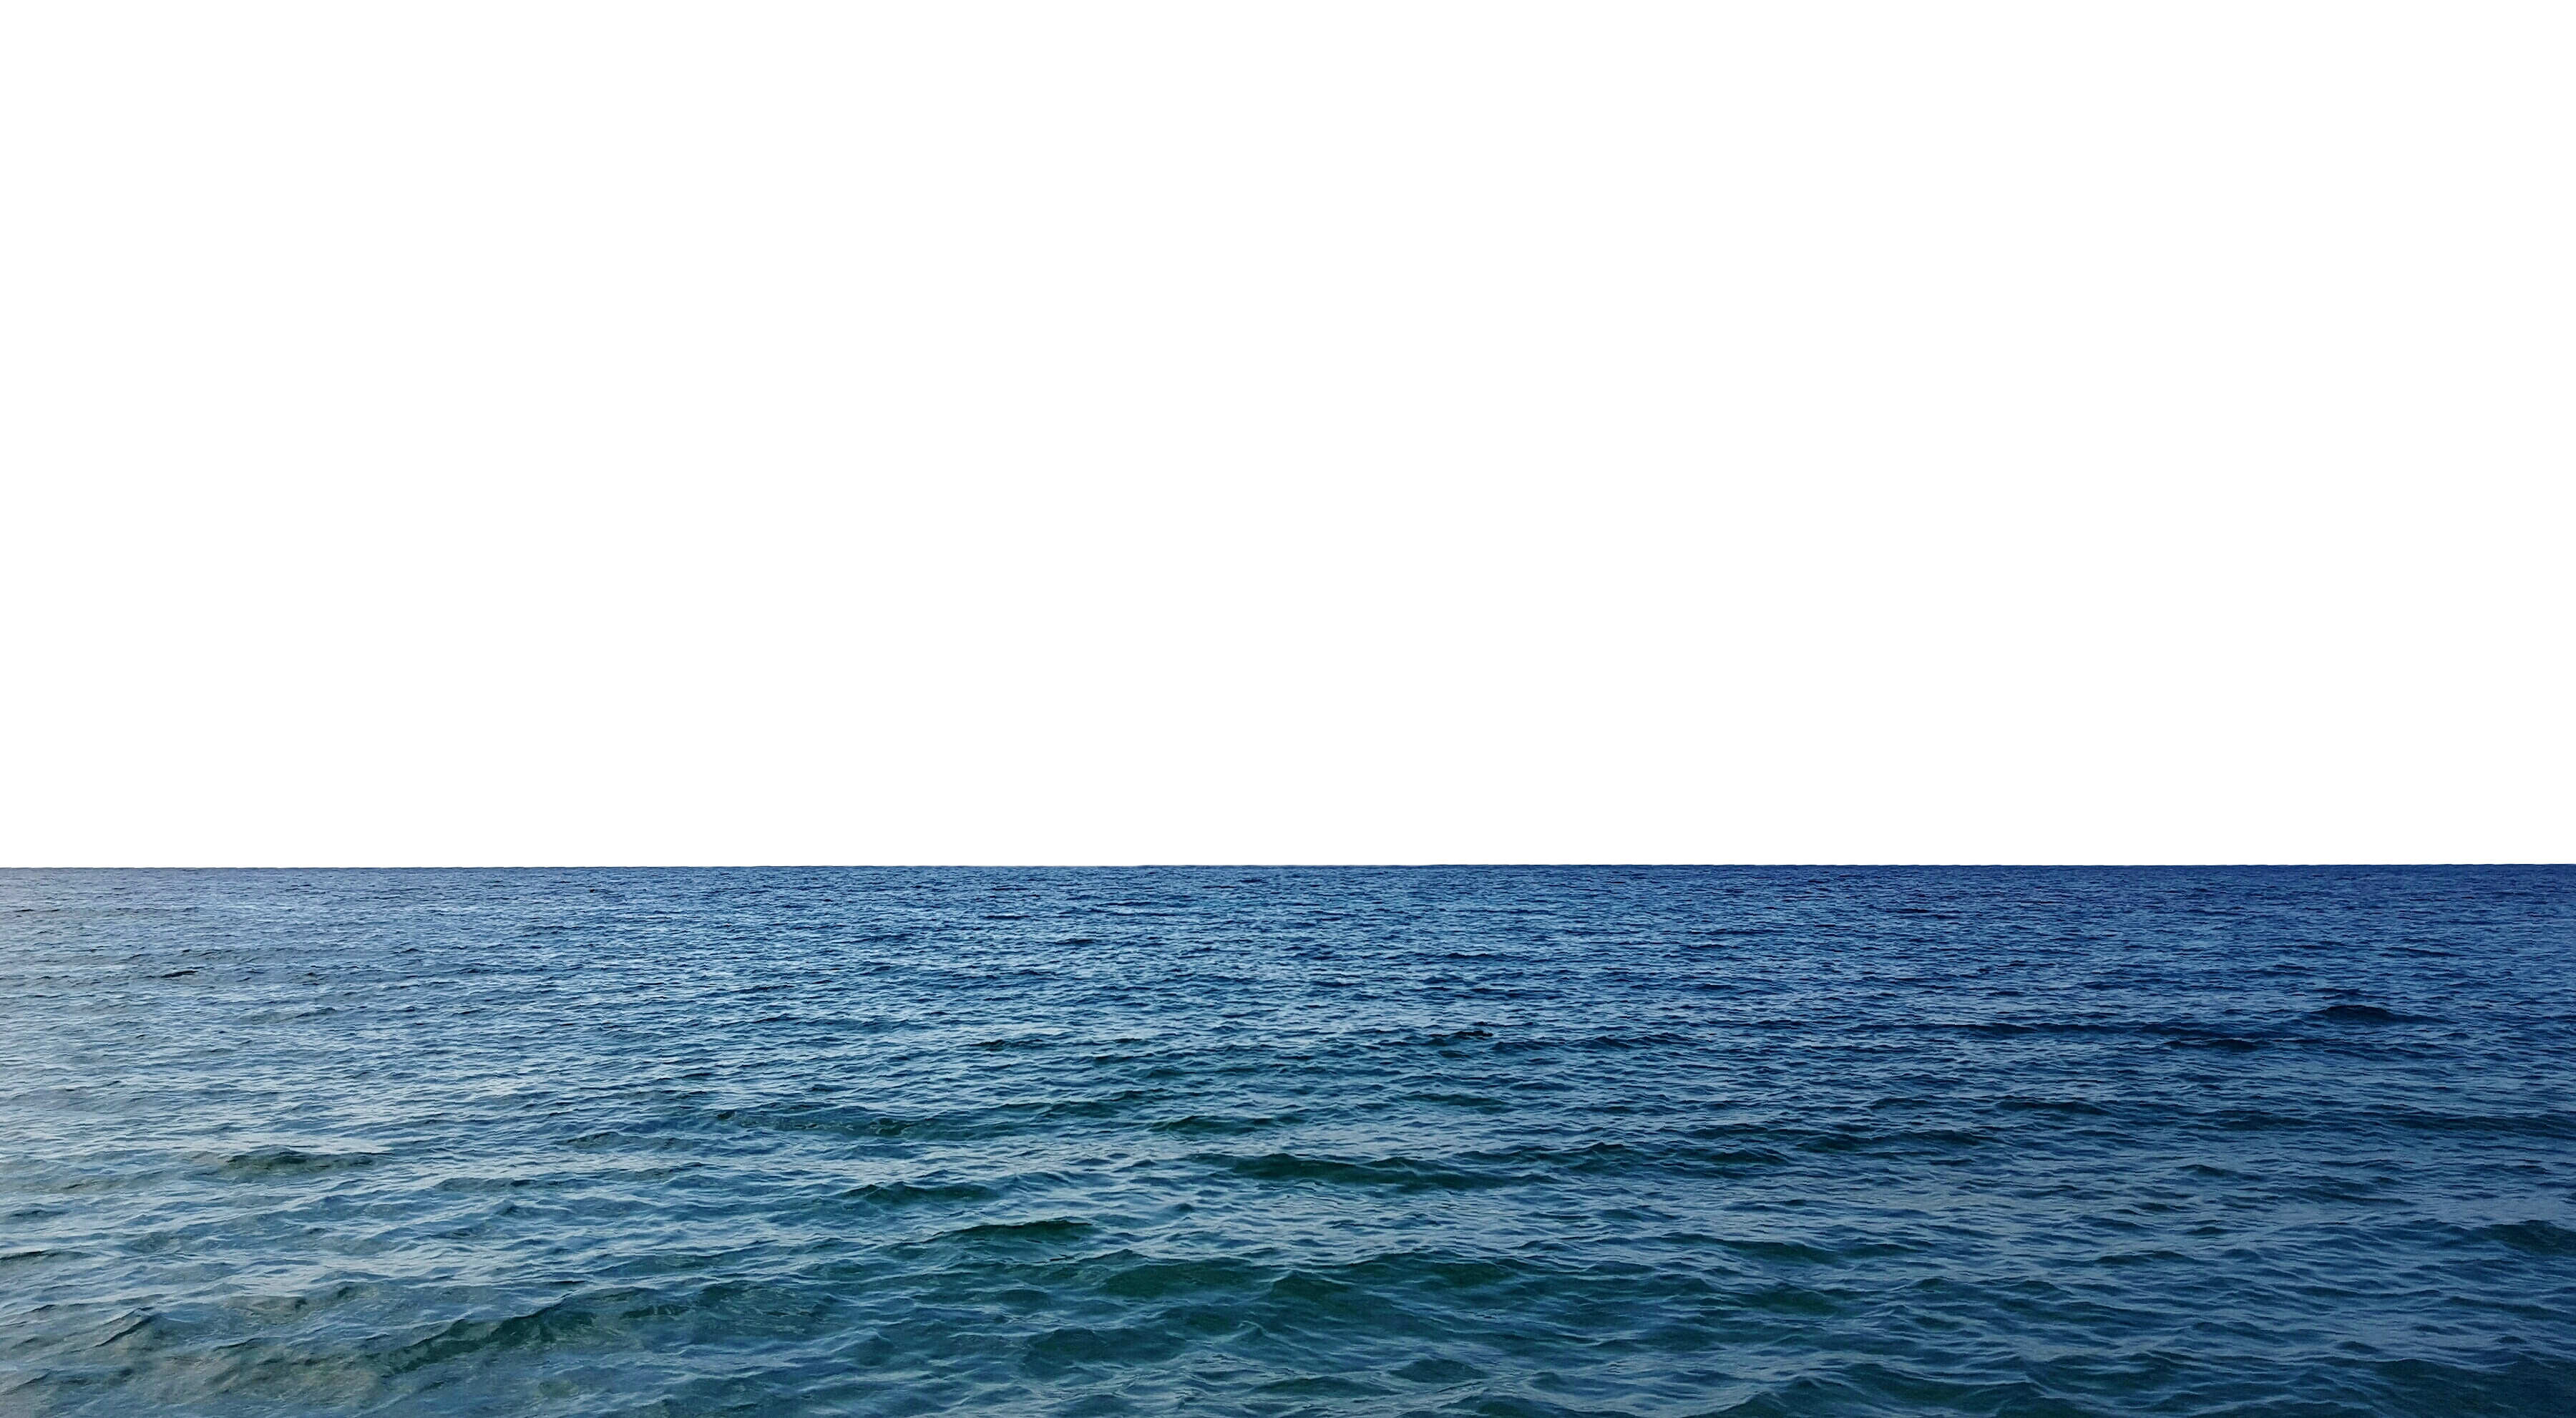 Sea Png Image Png Photo Png Images For Editing Aesthetic Art